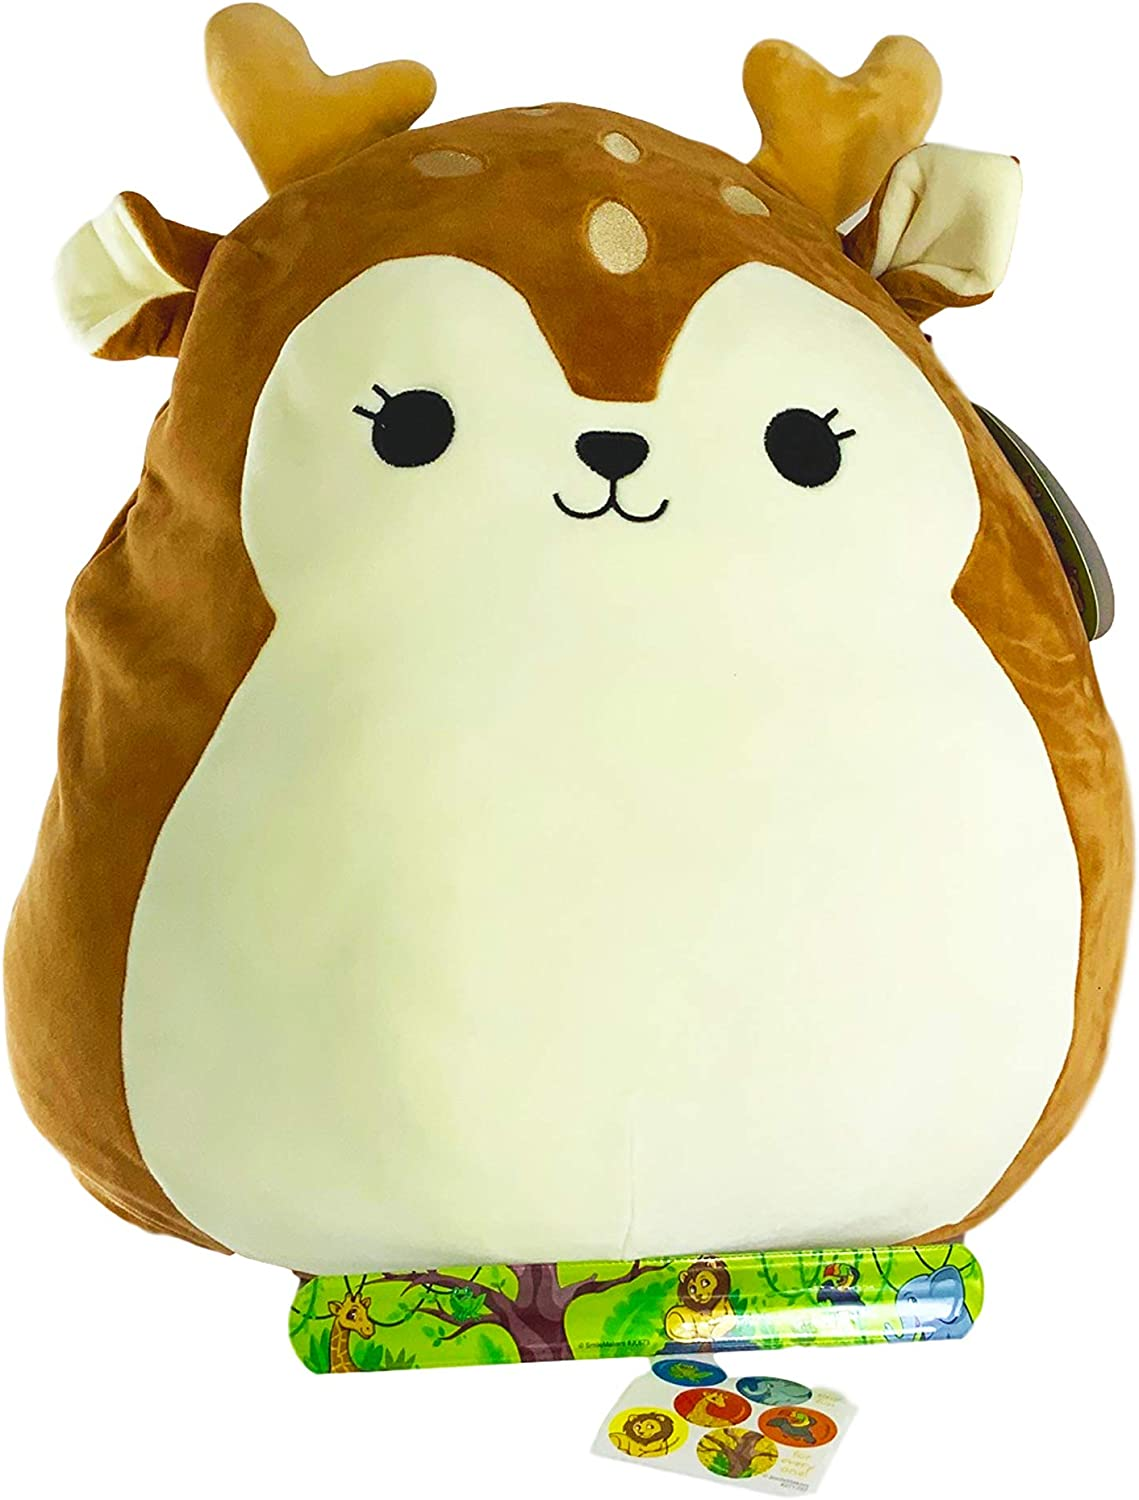 Squishmallows Soft Plush Deer 20 Tall Animal Slap Bracelet Stickers 3 Pc Bundle Dawn Animals Amazon Canada Find plush deer from a vast selection of branded soft toys. squishmallows soft plush deer 20